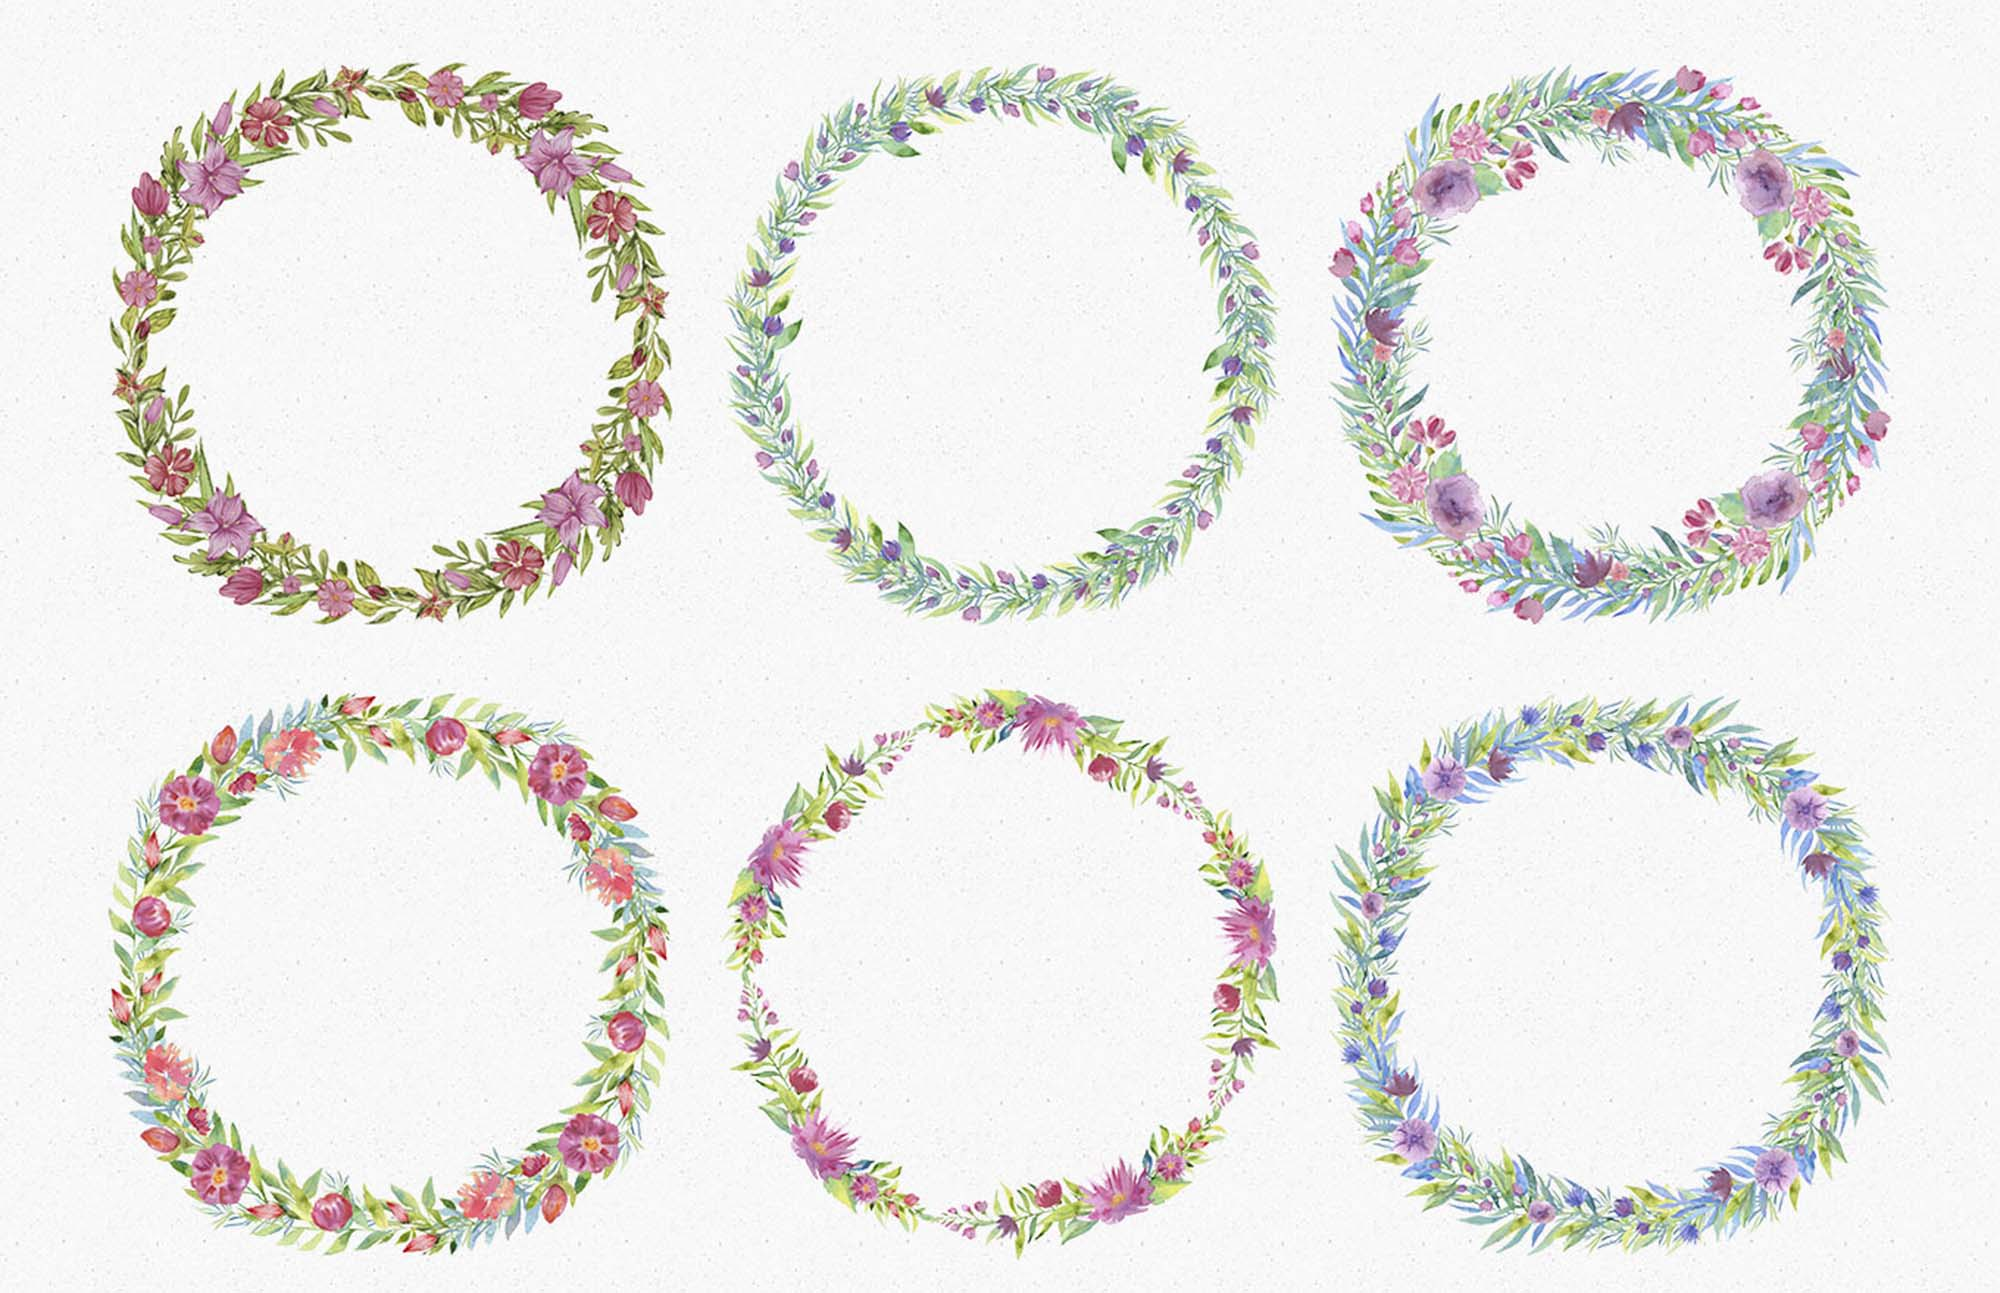 Spring Garden Watercolors Wreaths